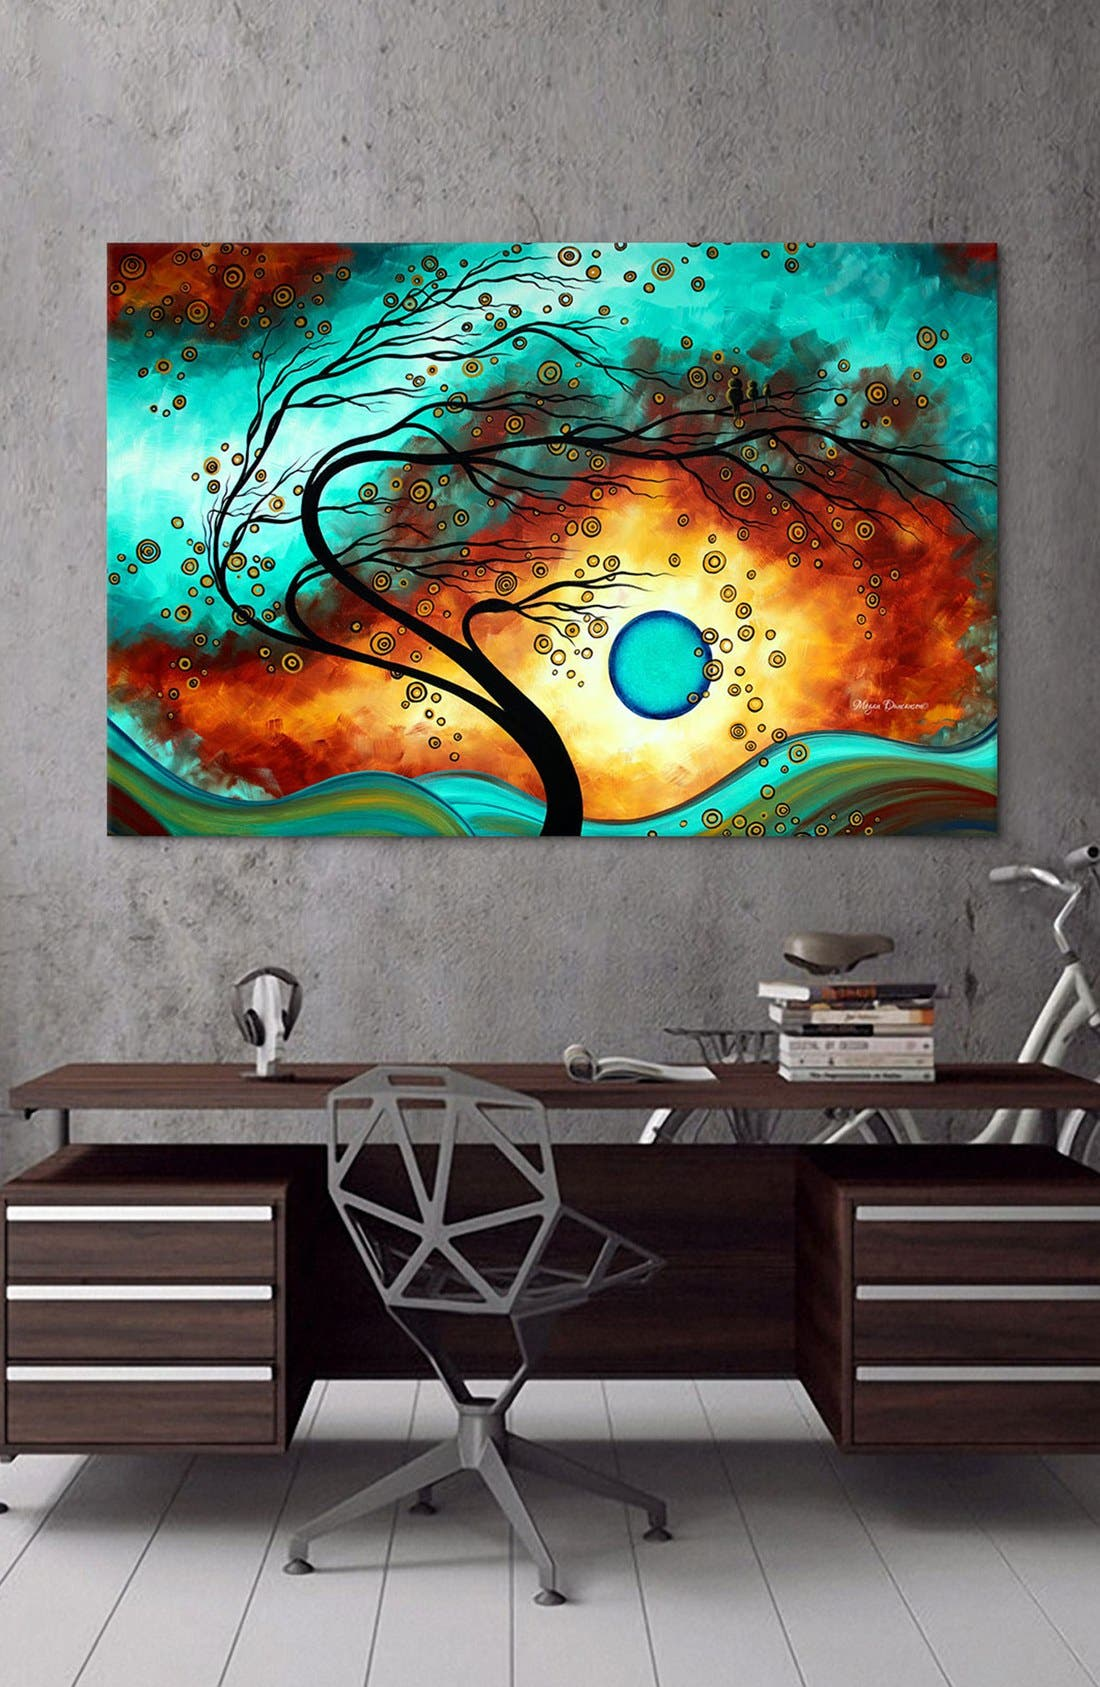 'Family Joy - Megan Duncanson' Giclée Print Canvas Art,                             Alternate thumbnail 2, color,                             Blue/ Green